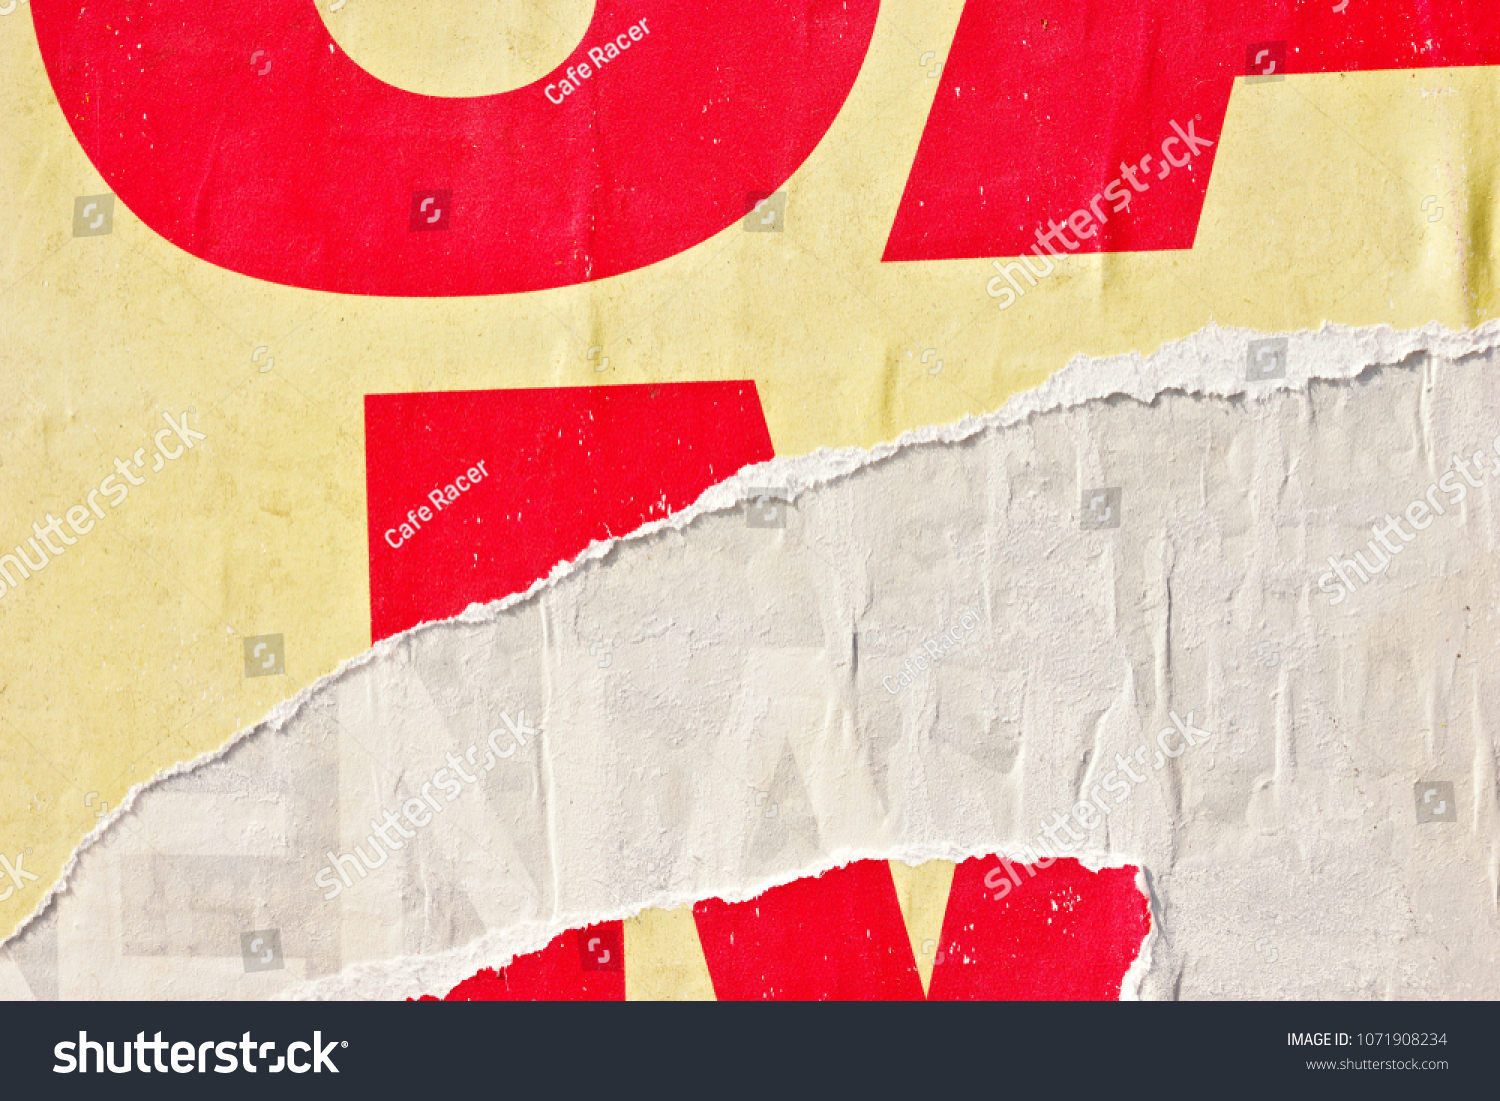 Old vintage ripped torn posters grunge texture background creased crumpled paper backdrop placard surface #1071908234